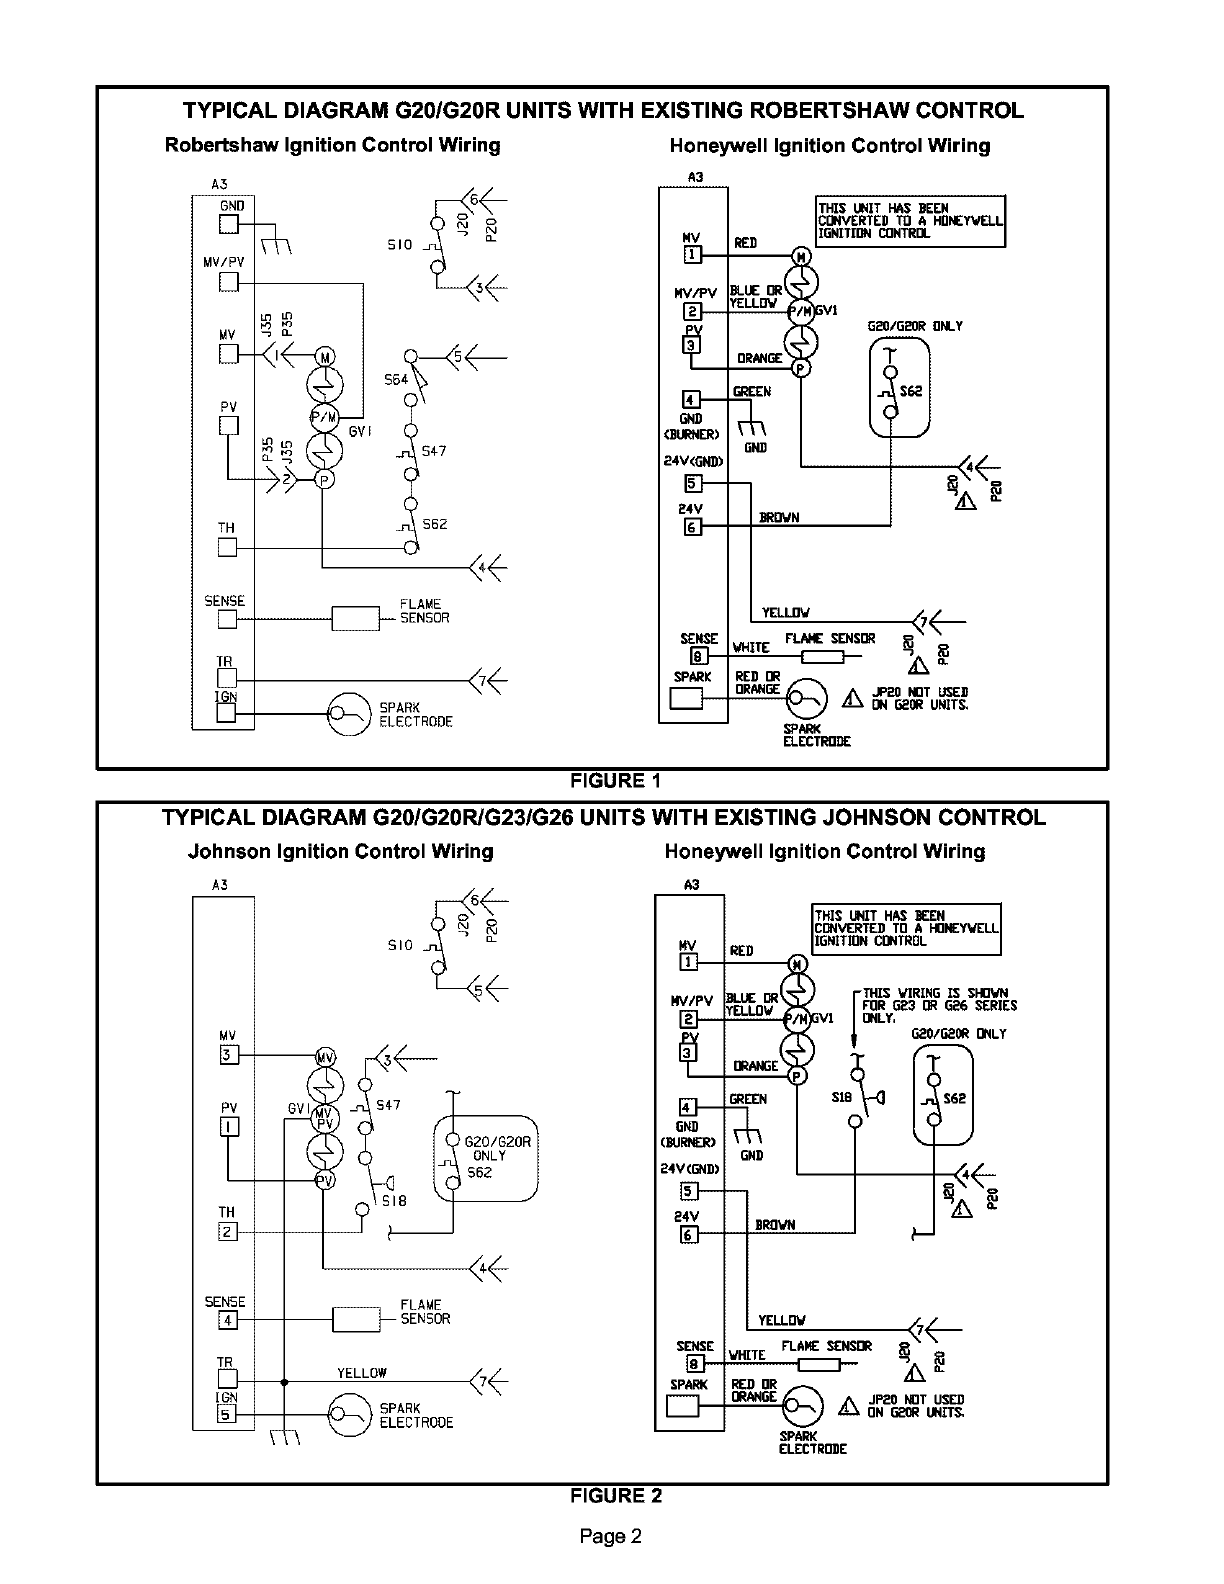 Lennox Furnace Heater Gas Manual L0806819 Johnson Controls Wiring Diagram Typical G20 G20r Units With Existing Robertshaw Control Ignition